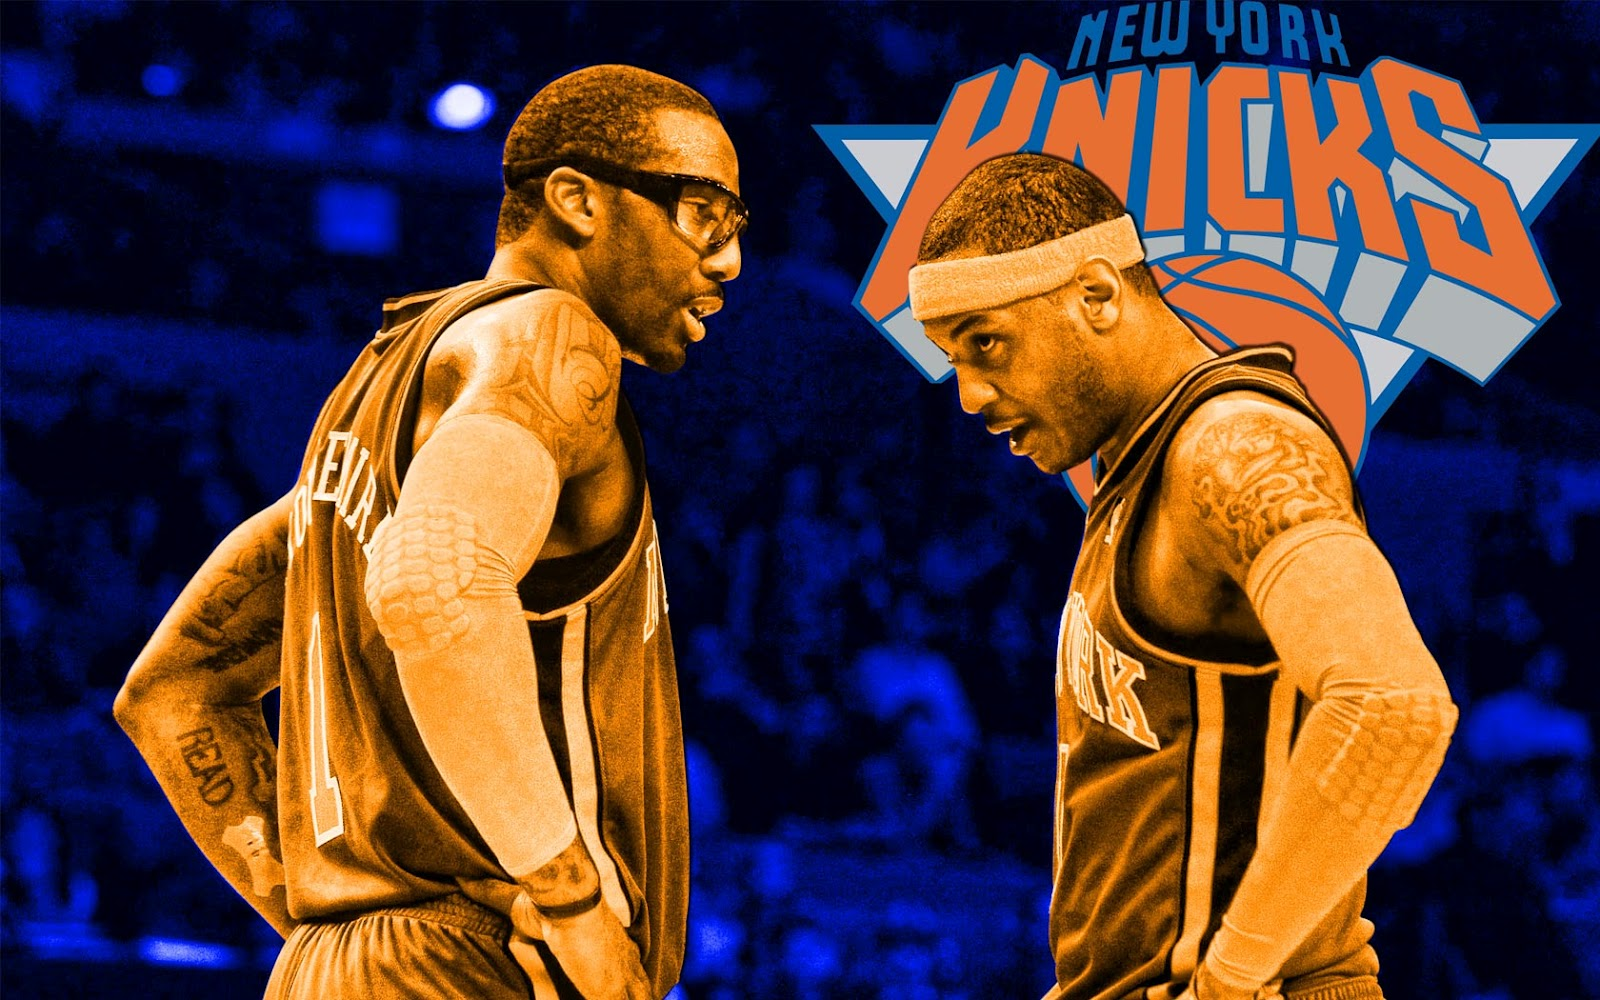 http://1.bp.blogspot.com/-Bohrp31jJnE/UFimuHfhE1I/AAAAAAAAcm8/tYGkct5uCDo/s1600/Melo-And-Amare-Knicks-Wallpaper-BasketWallpapers.com-.jpeg